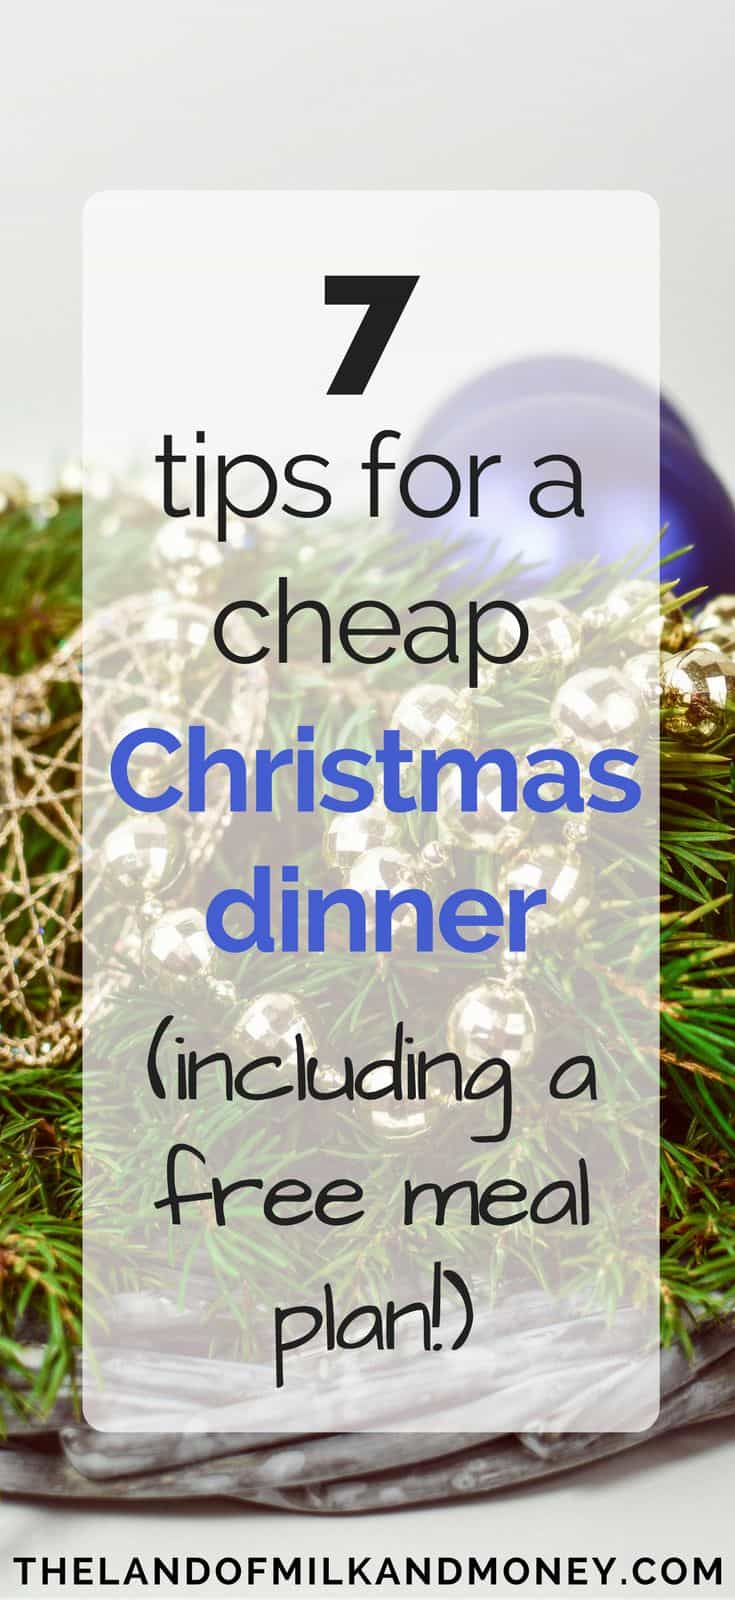 These cheap Christmas dinner ideas are amazing for having a frugal Christmas on a budget! I SO needed some ideas to help me save money these holidays so these money saving tips are perfect! It's great to see that we can still have our Christmas traditions while embracing frugal living, with easy Christmas recipes and menus that are real money savers #christmas #holidays #frugal #savemoney